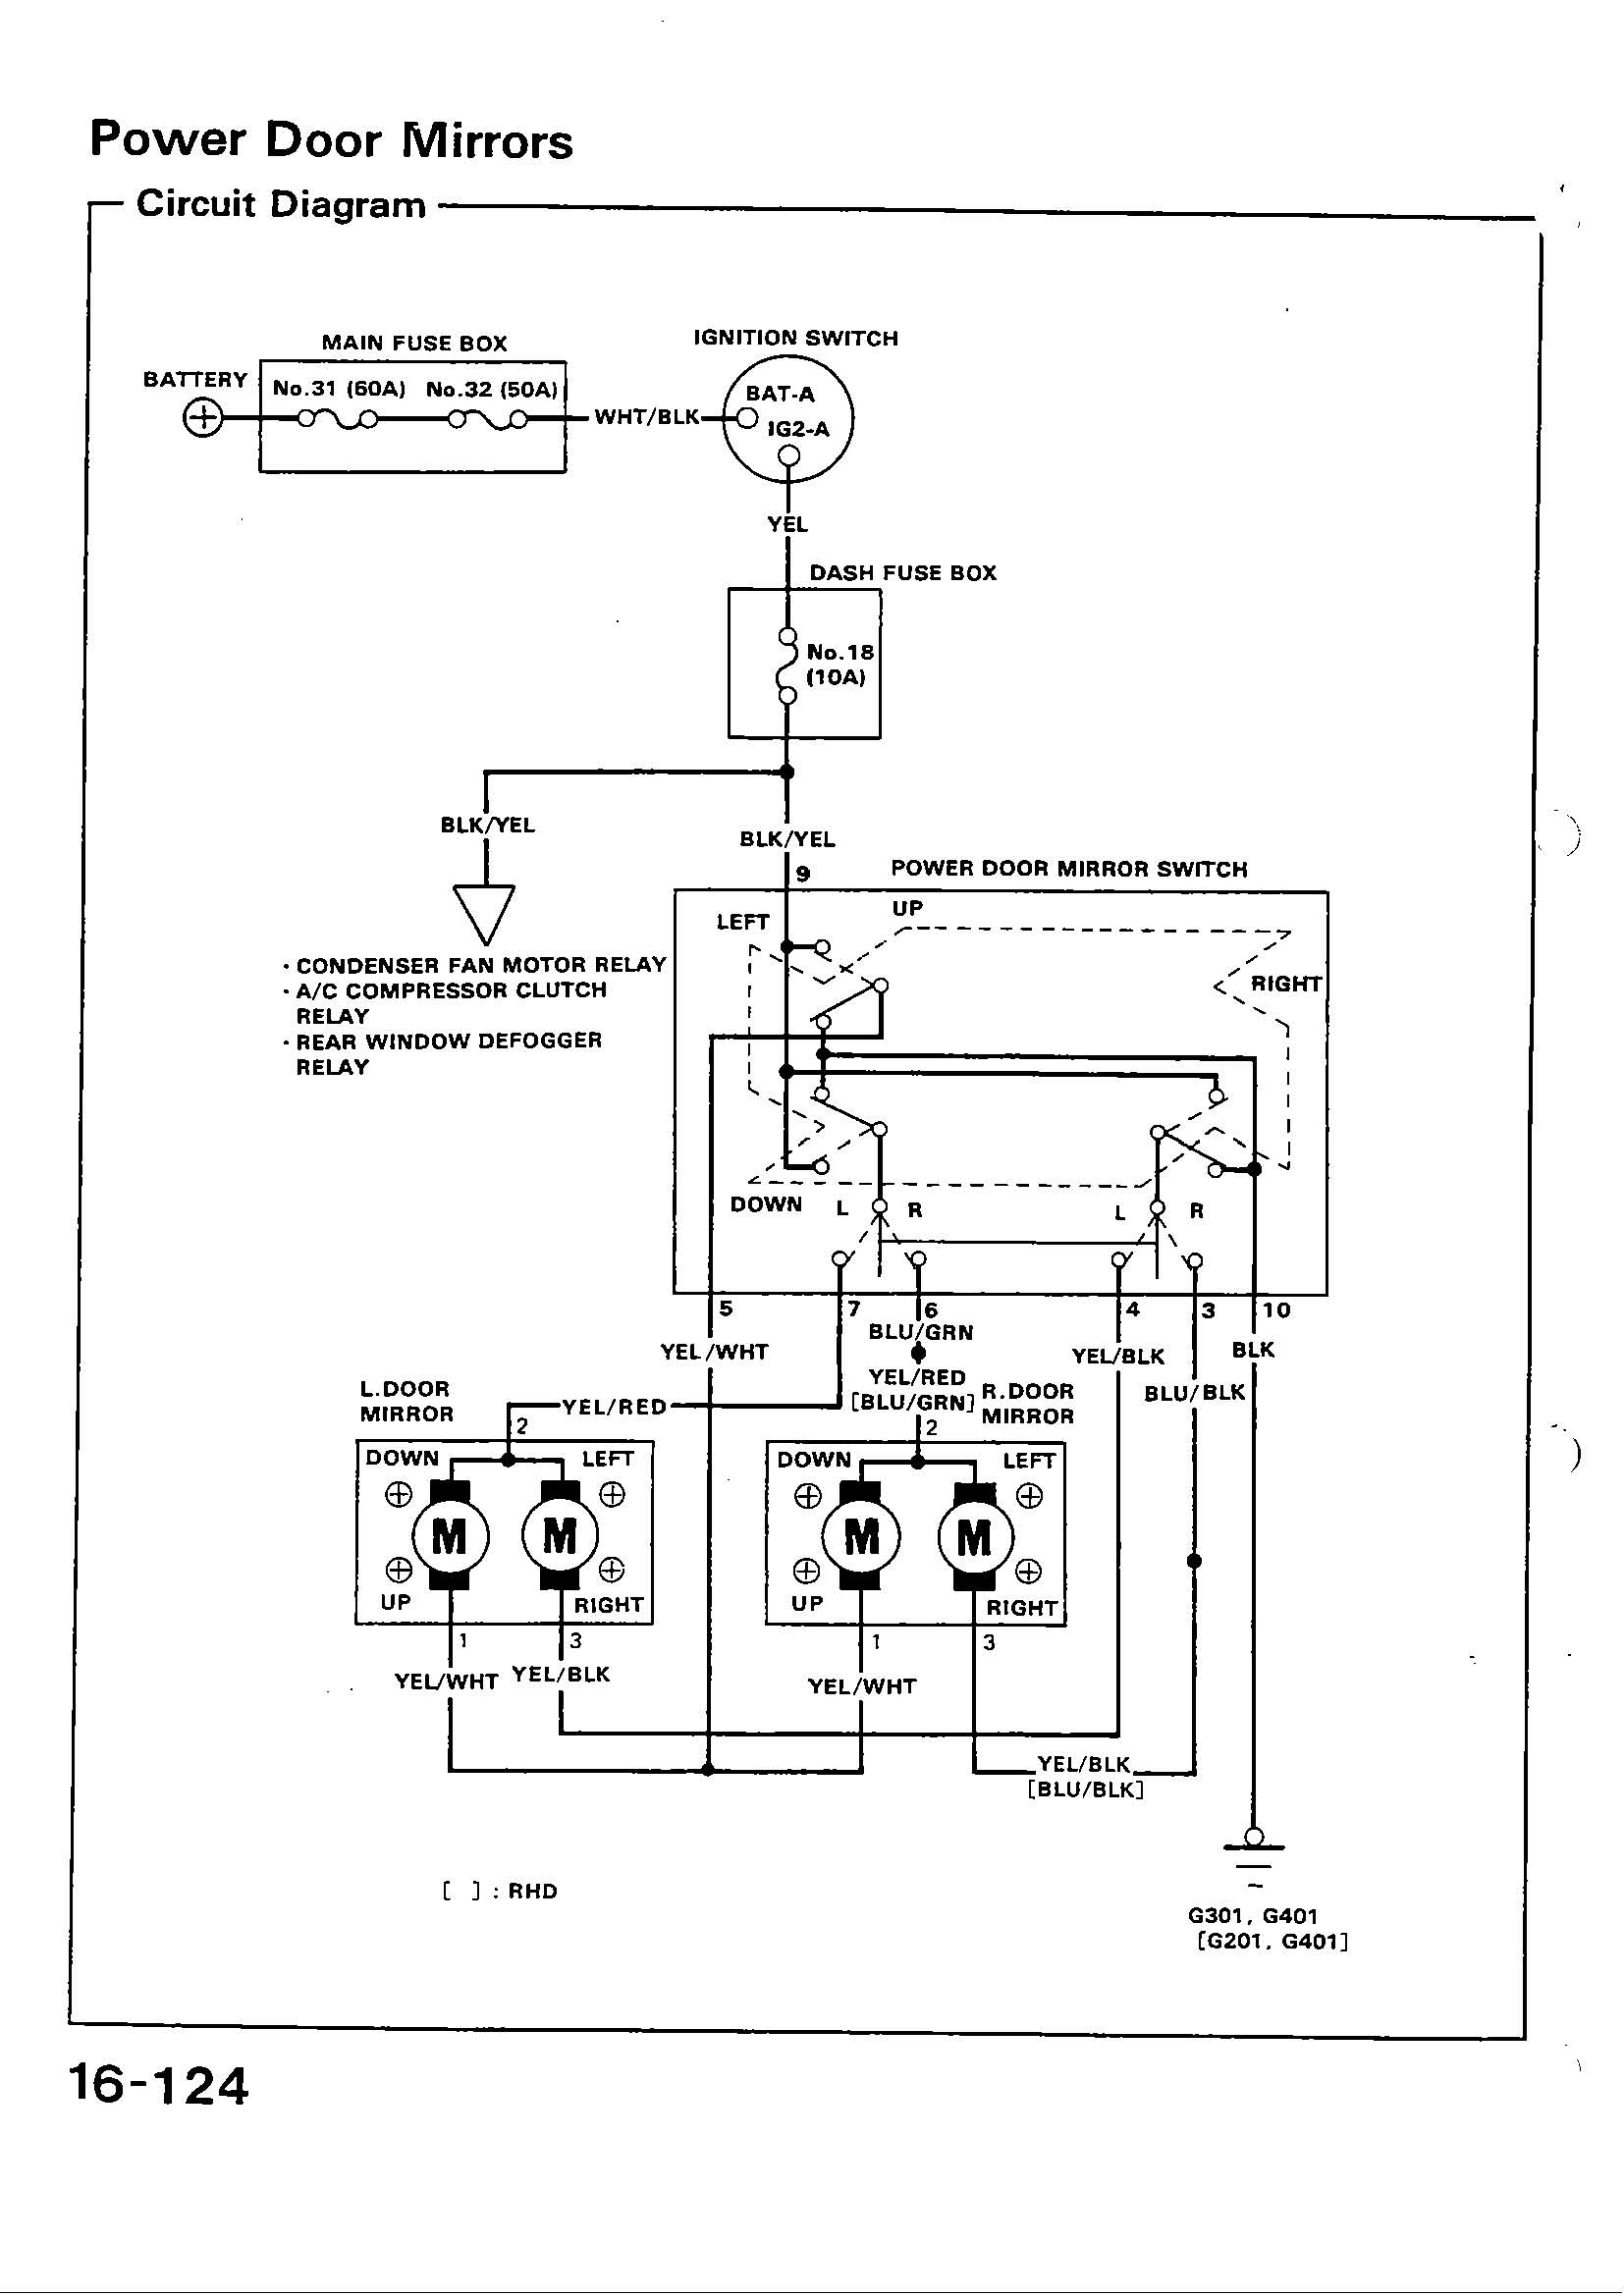 jem wiring diagrams 28   jem wiring diagram   ibanez at100 wiring diagram luxury  ibanez at100 wiring diagram